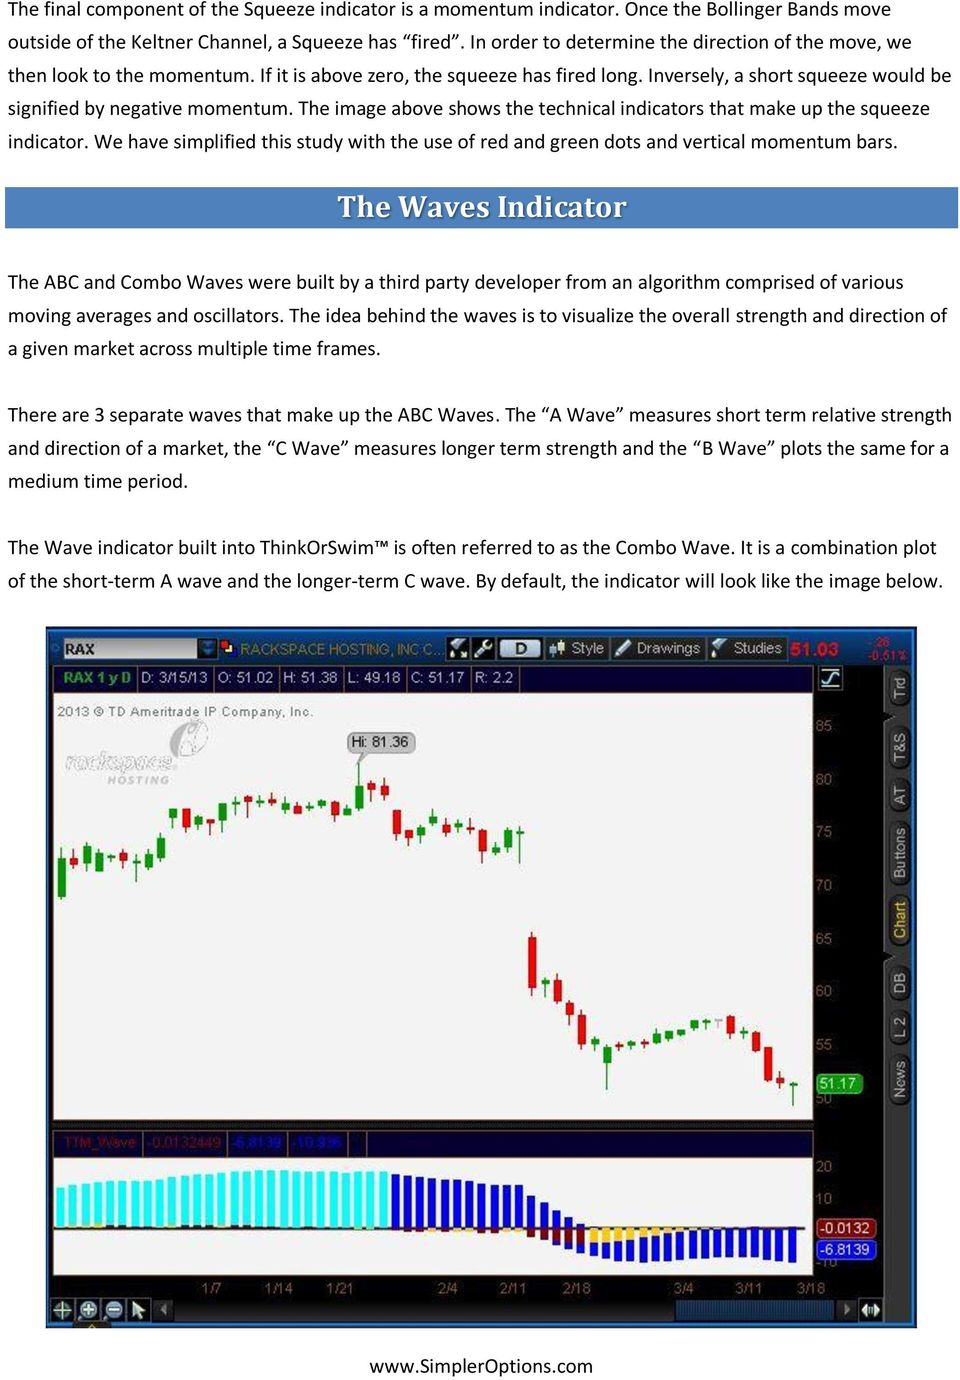 Simpler Options Indicator Guide An Informative Reference For